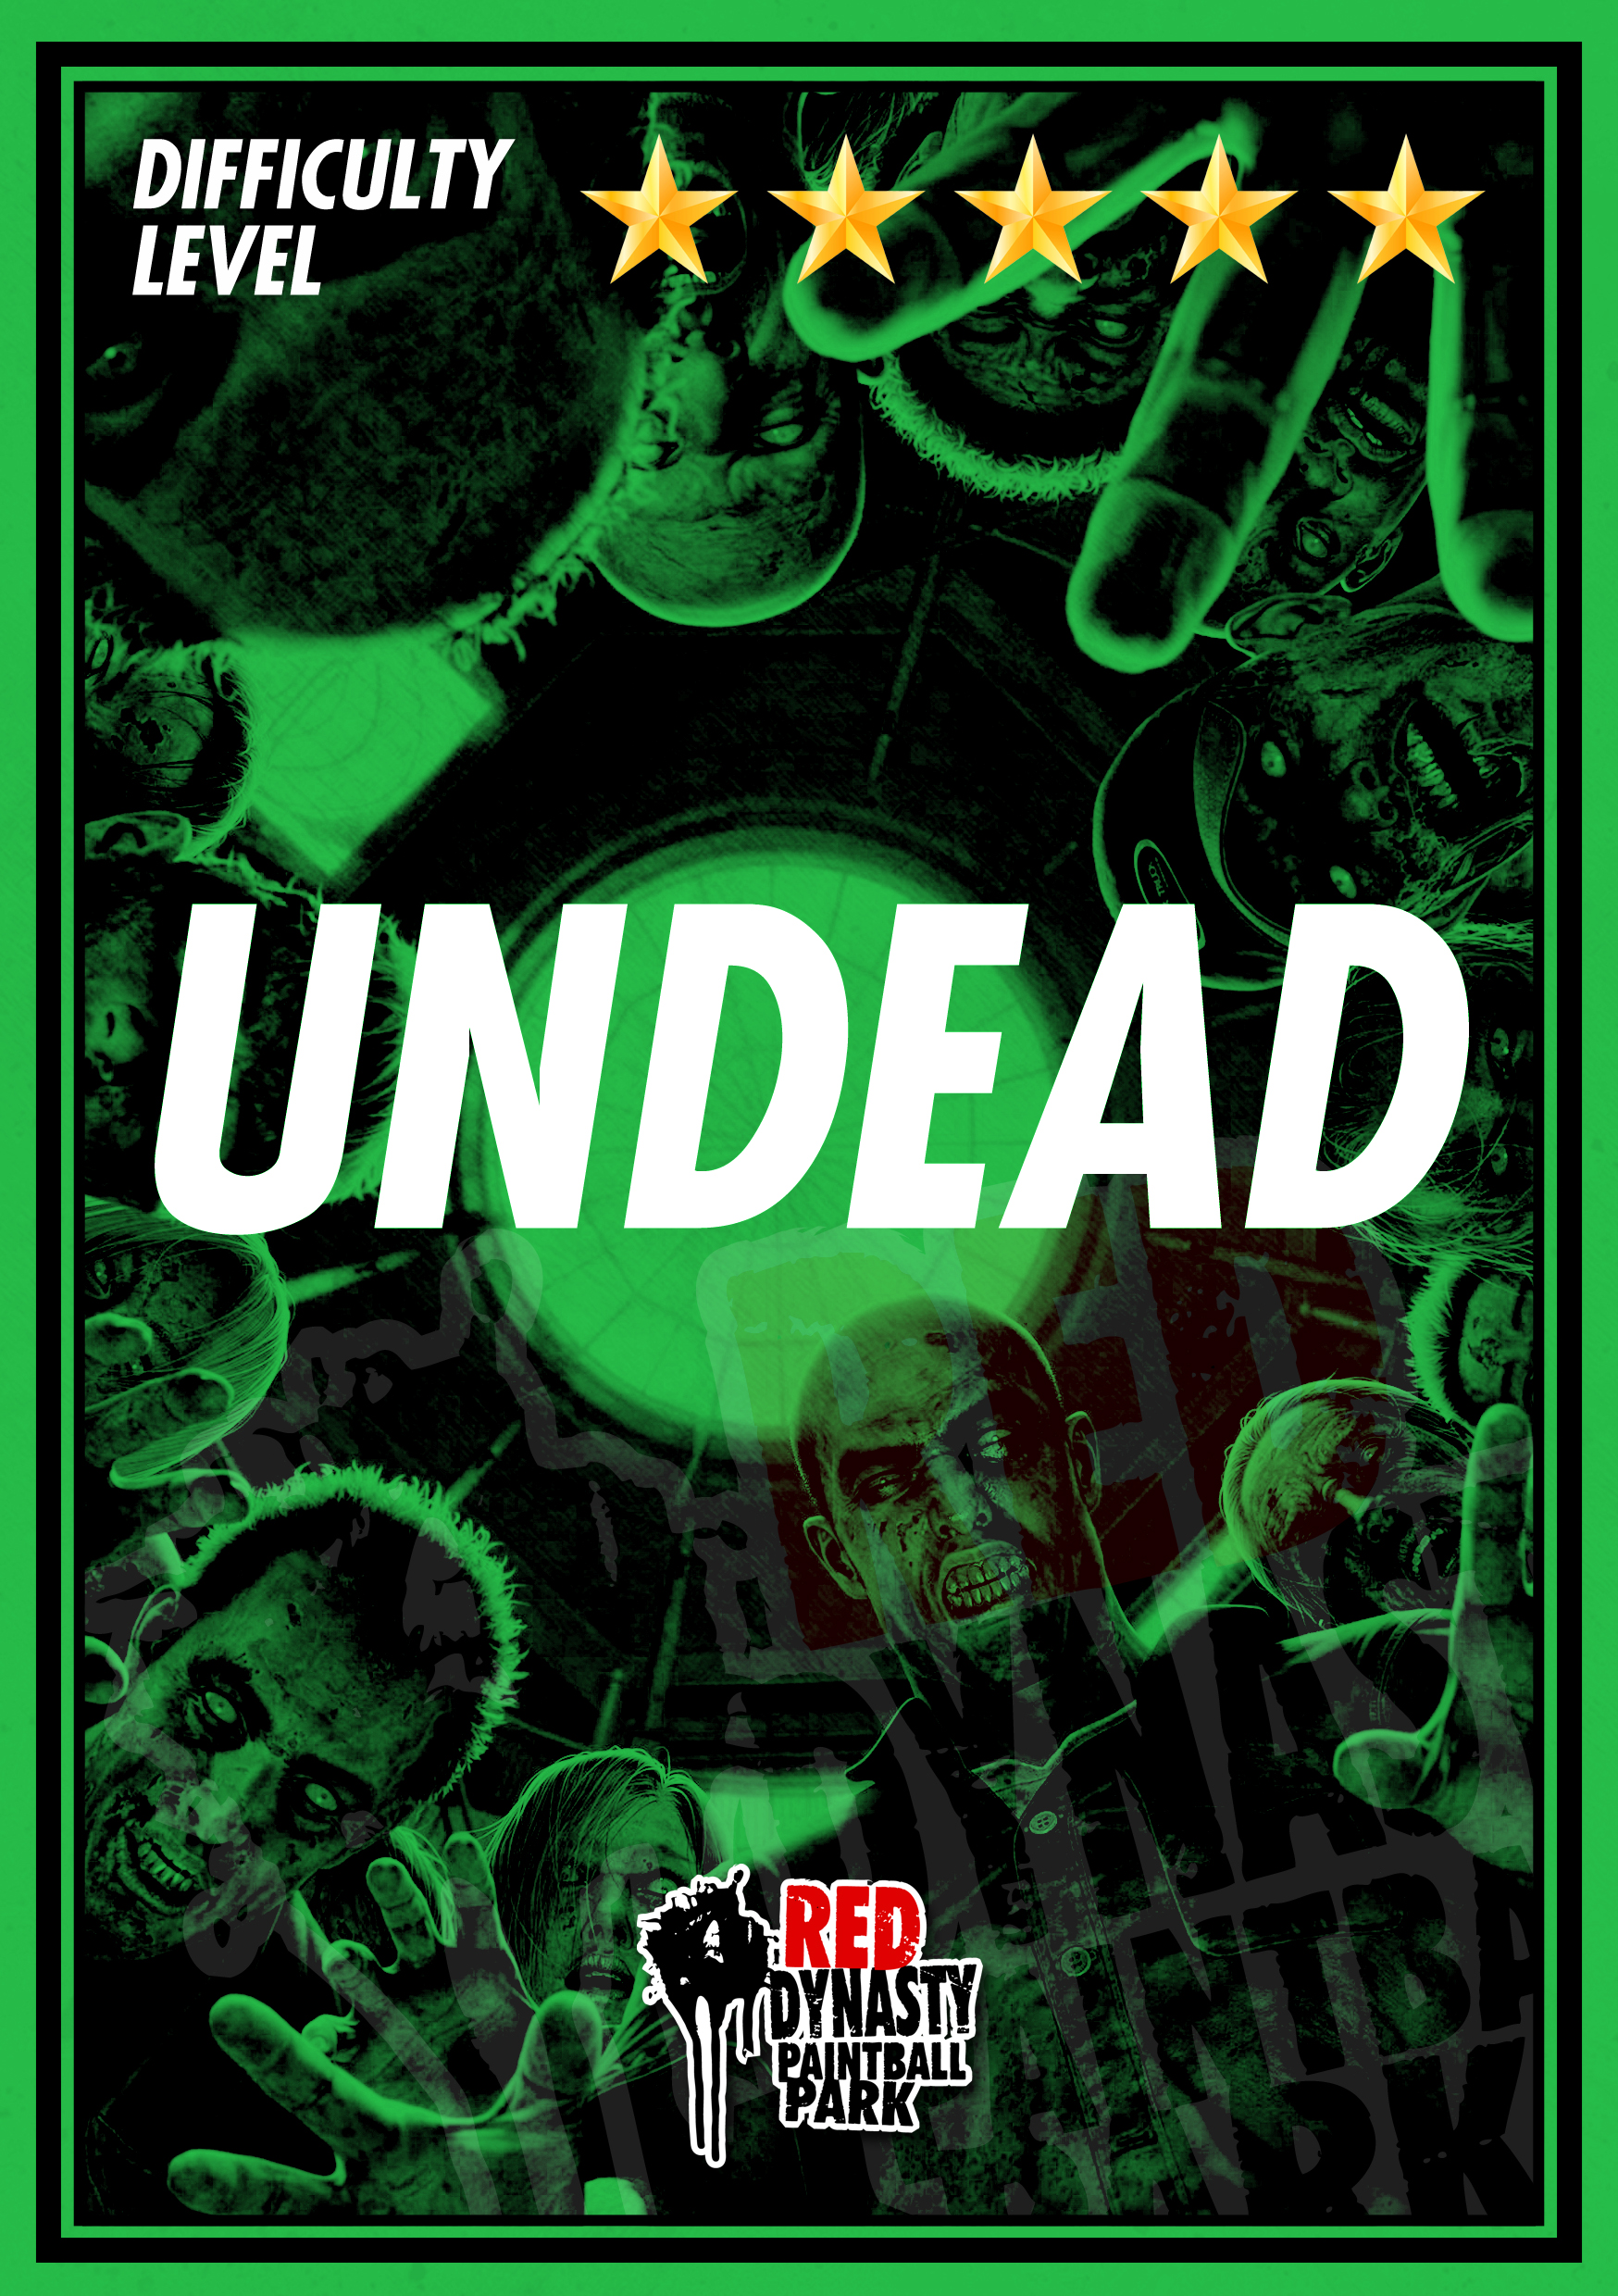 Among the survivors a player has be infected with the undead virus. Identify the undead and prevent the spread. Will the virus spread and infect everyone or can the survivors hold out till reinforcements arrive.